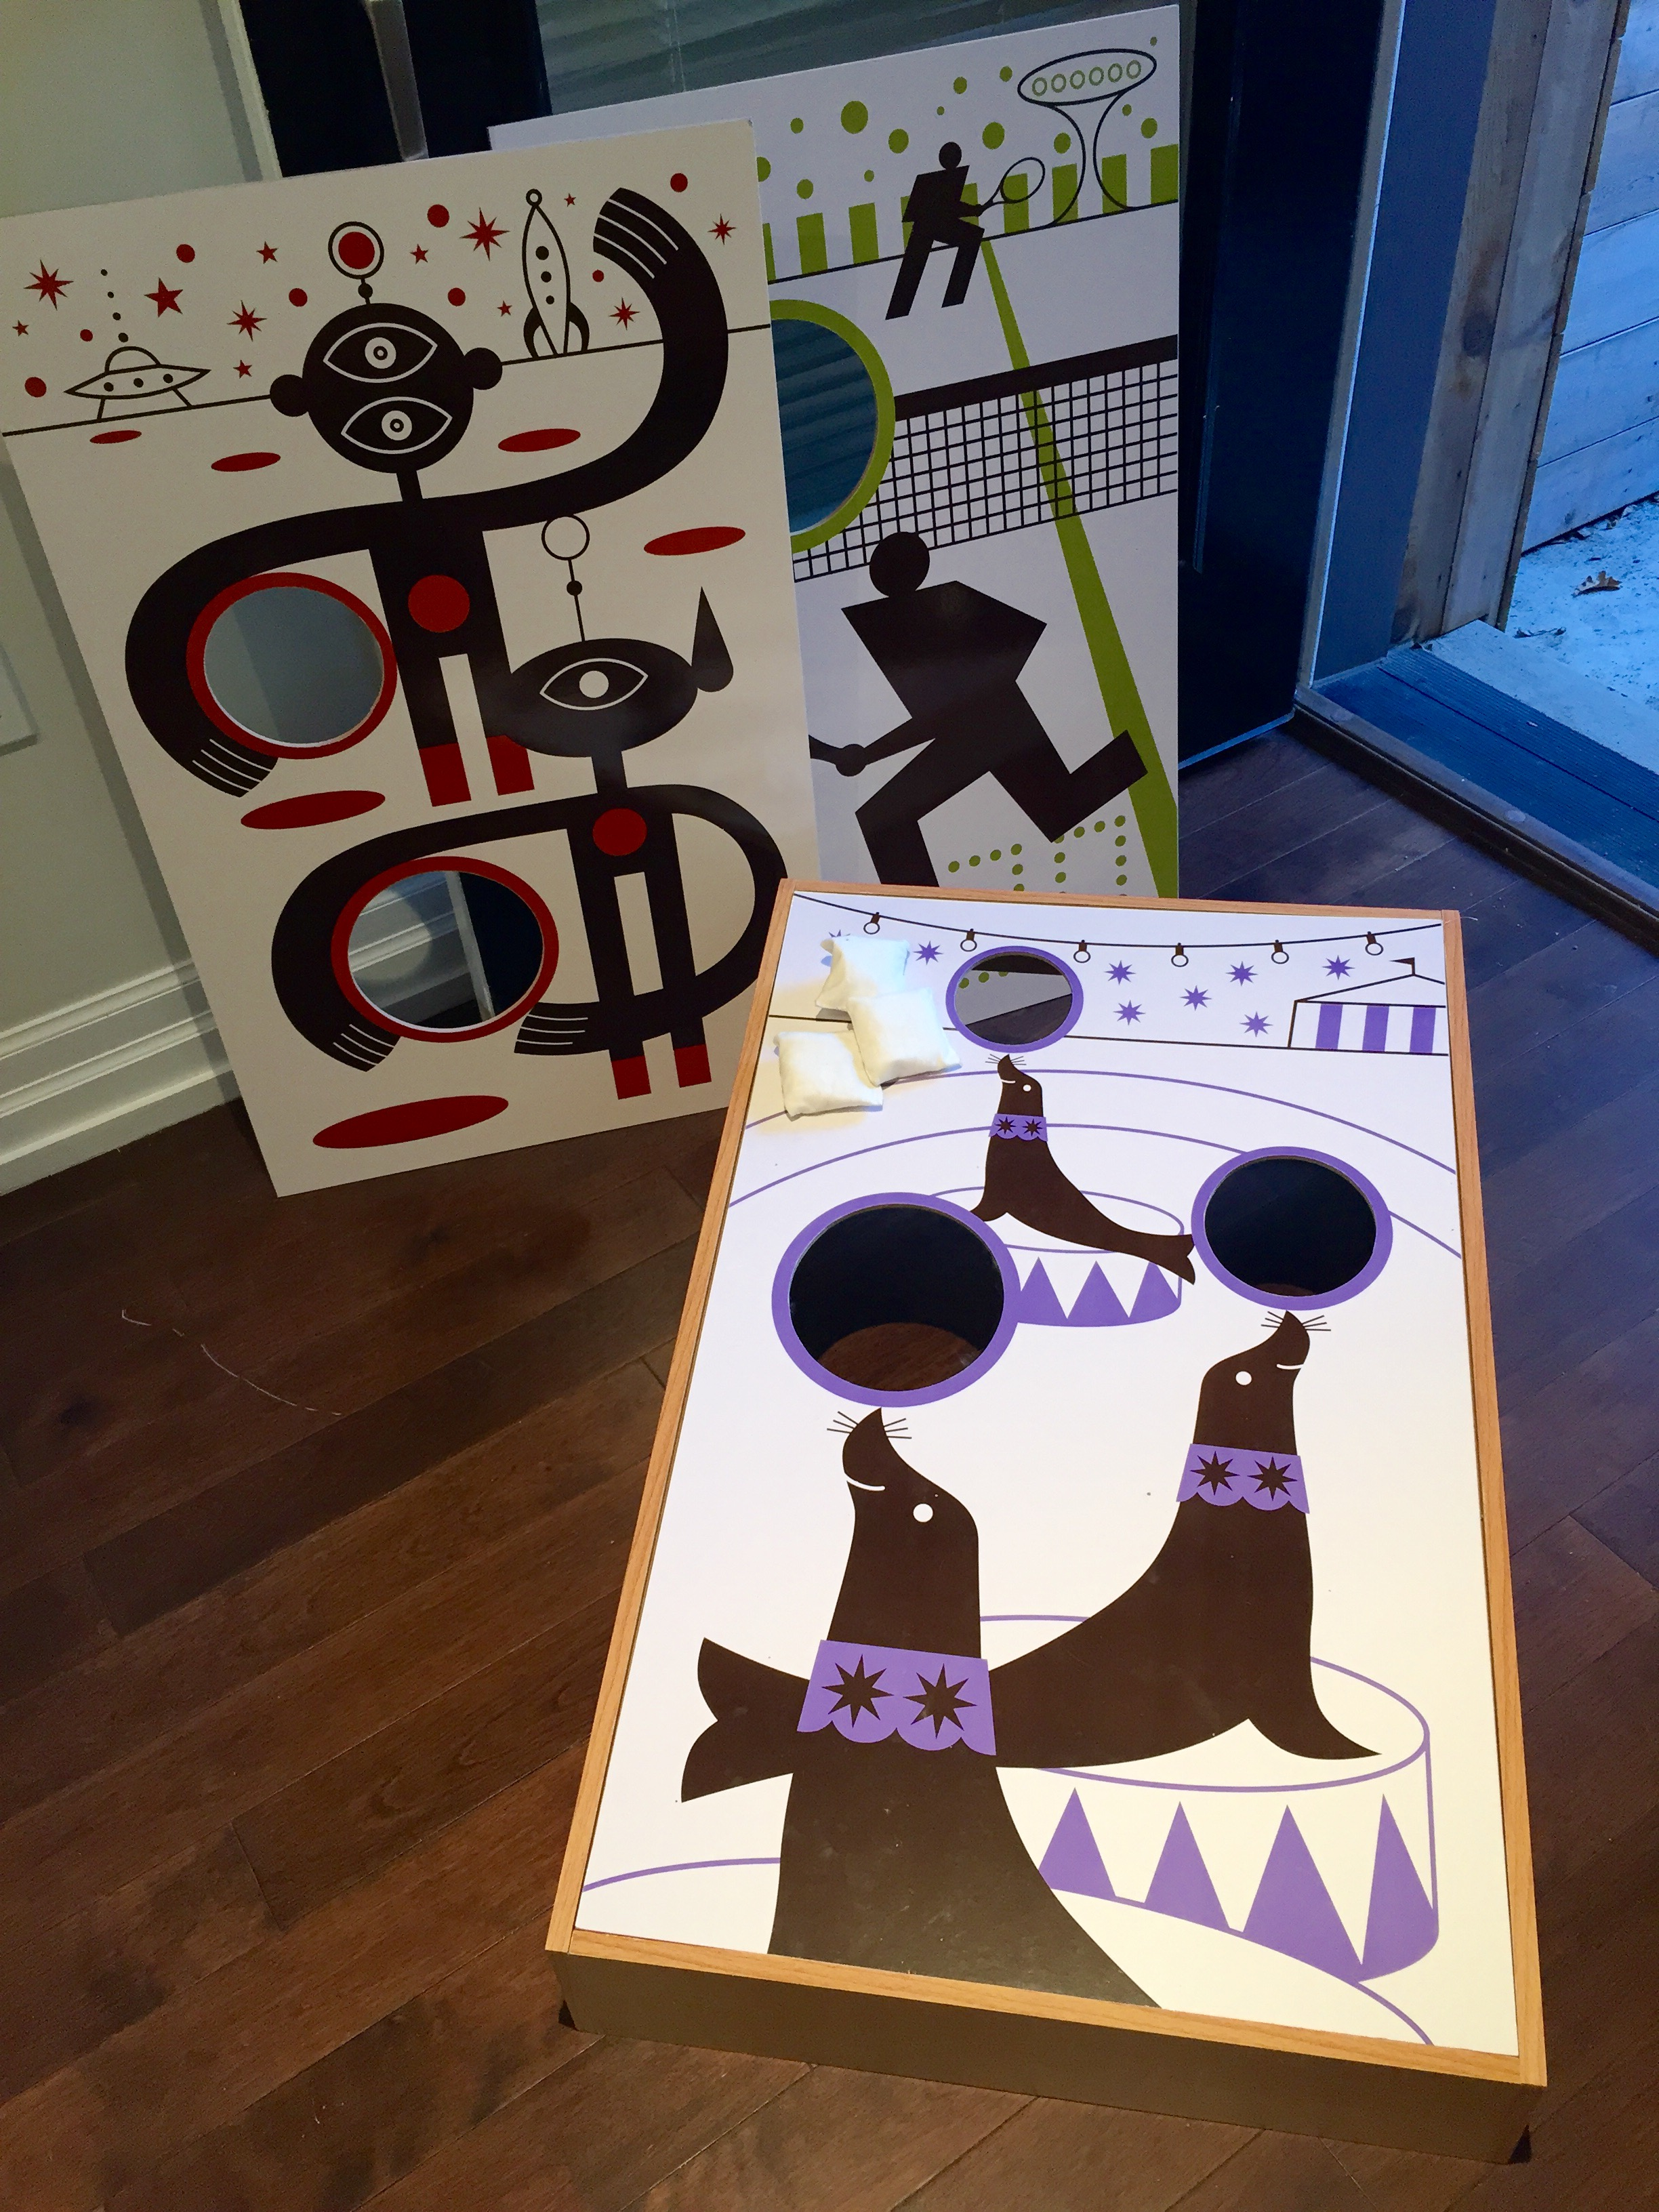 WOODEN BEANBAG TOSS GAME - 1, 2, AND 3 HOLES! BARELY USED, IN EXCELLENT CONDITION, FROM CRATE AND BARRELL OWNED STORE 'THE LAND OF NOD'